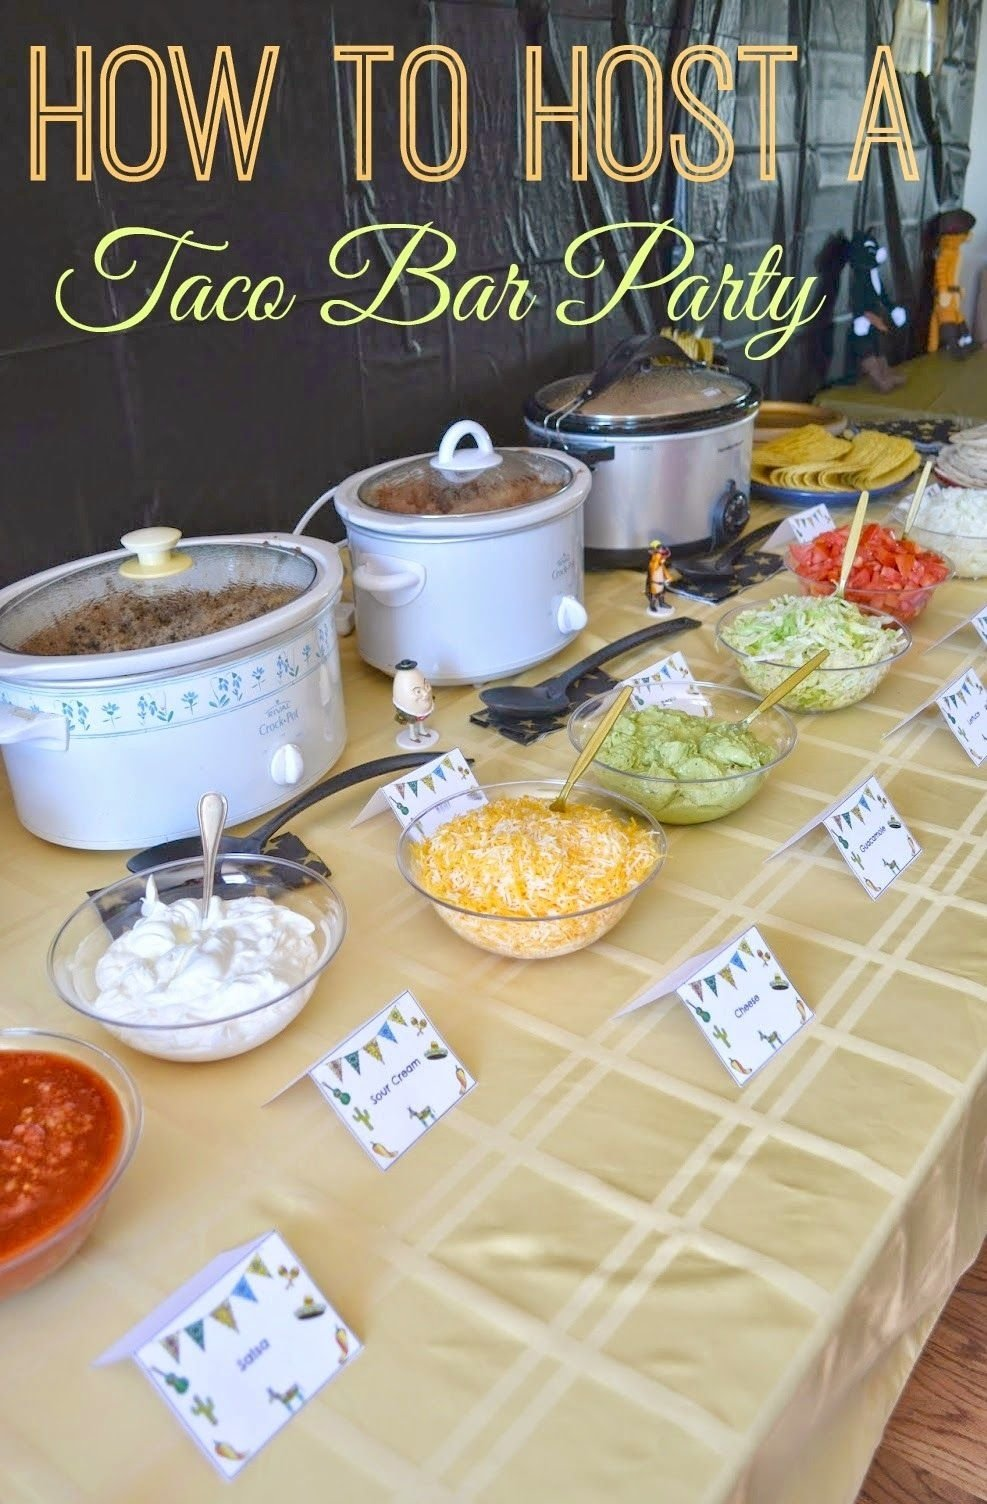 10 Cute Ideas For Birthday Party Food diy taco bar party table tents free printables taco bar party 1 2021